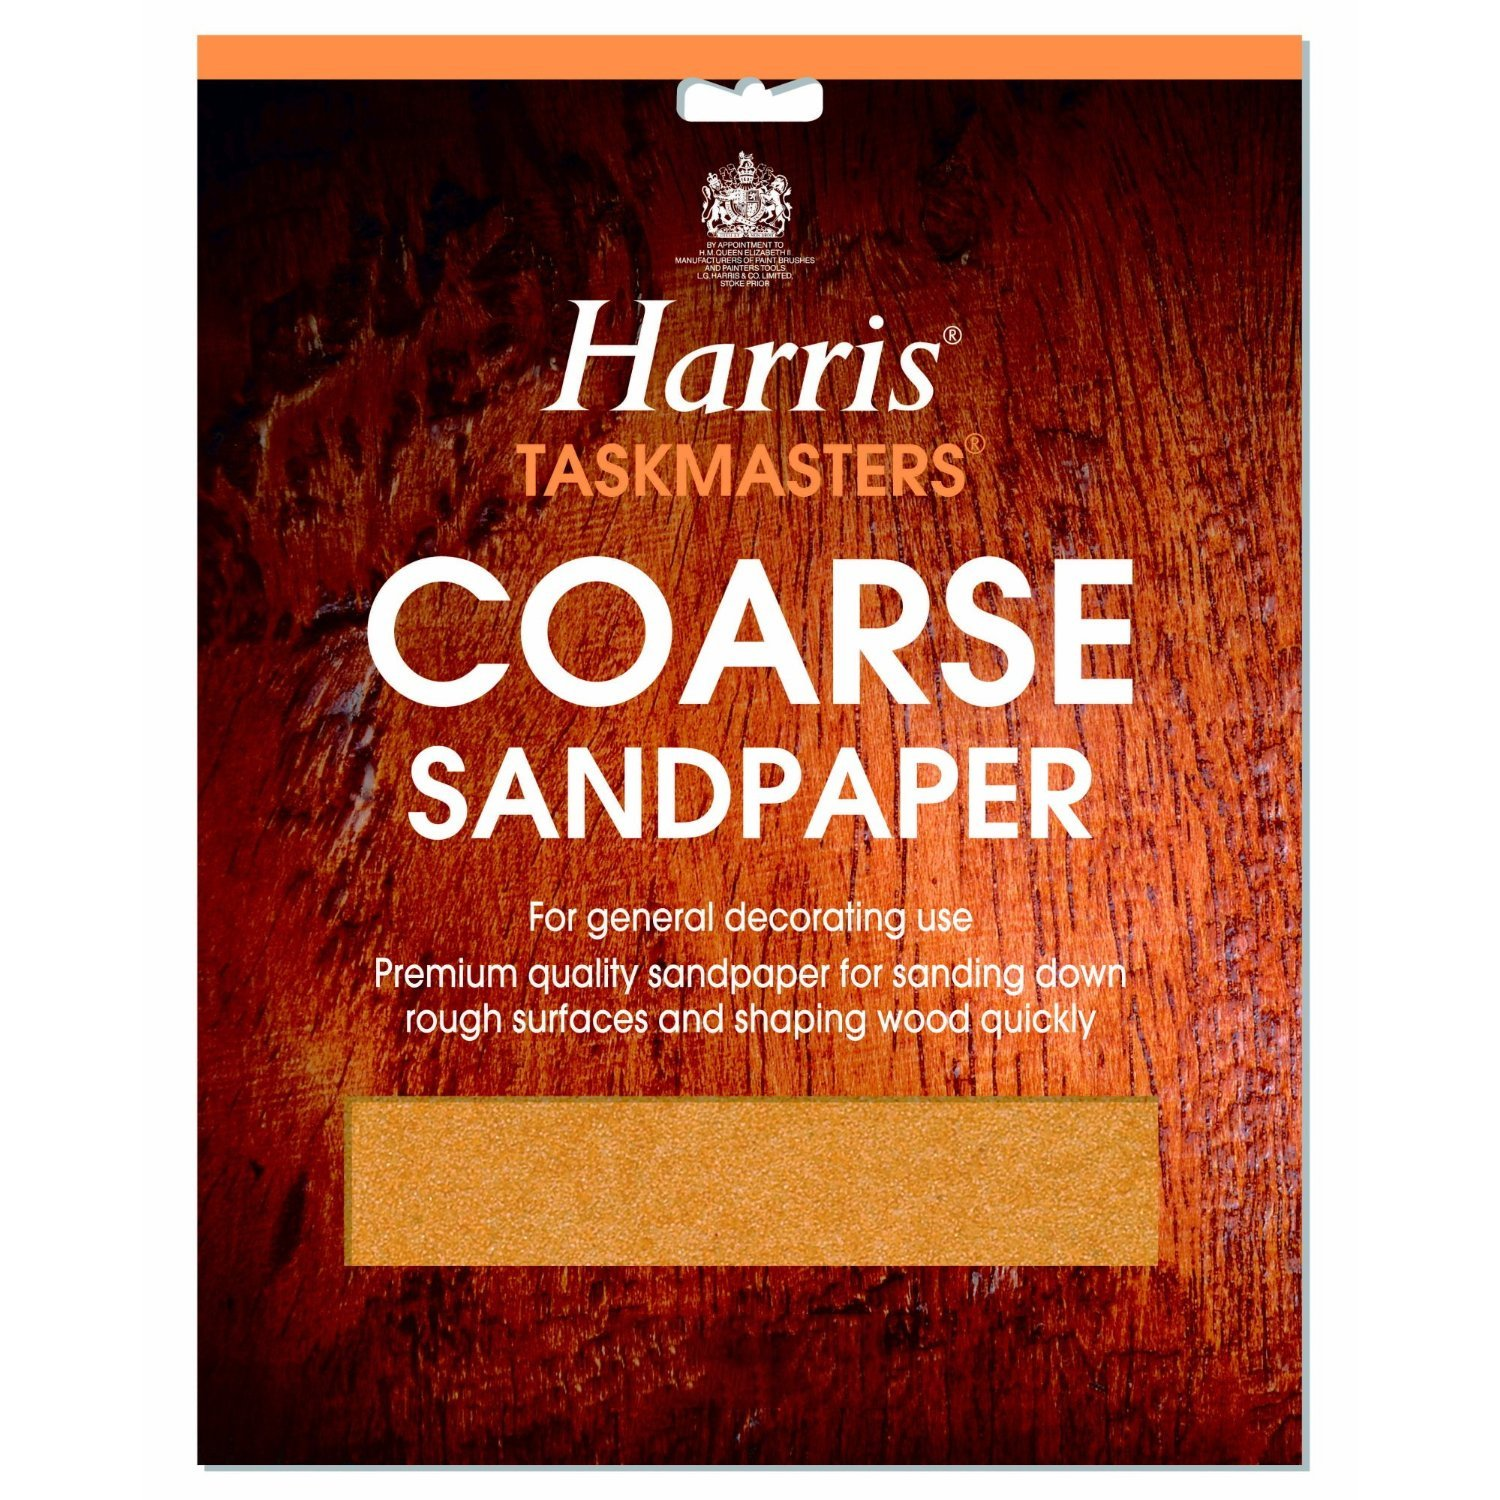 LG Harris Coarse Sandpaper Pack of 4